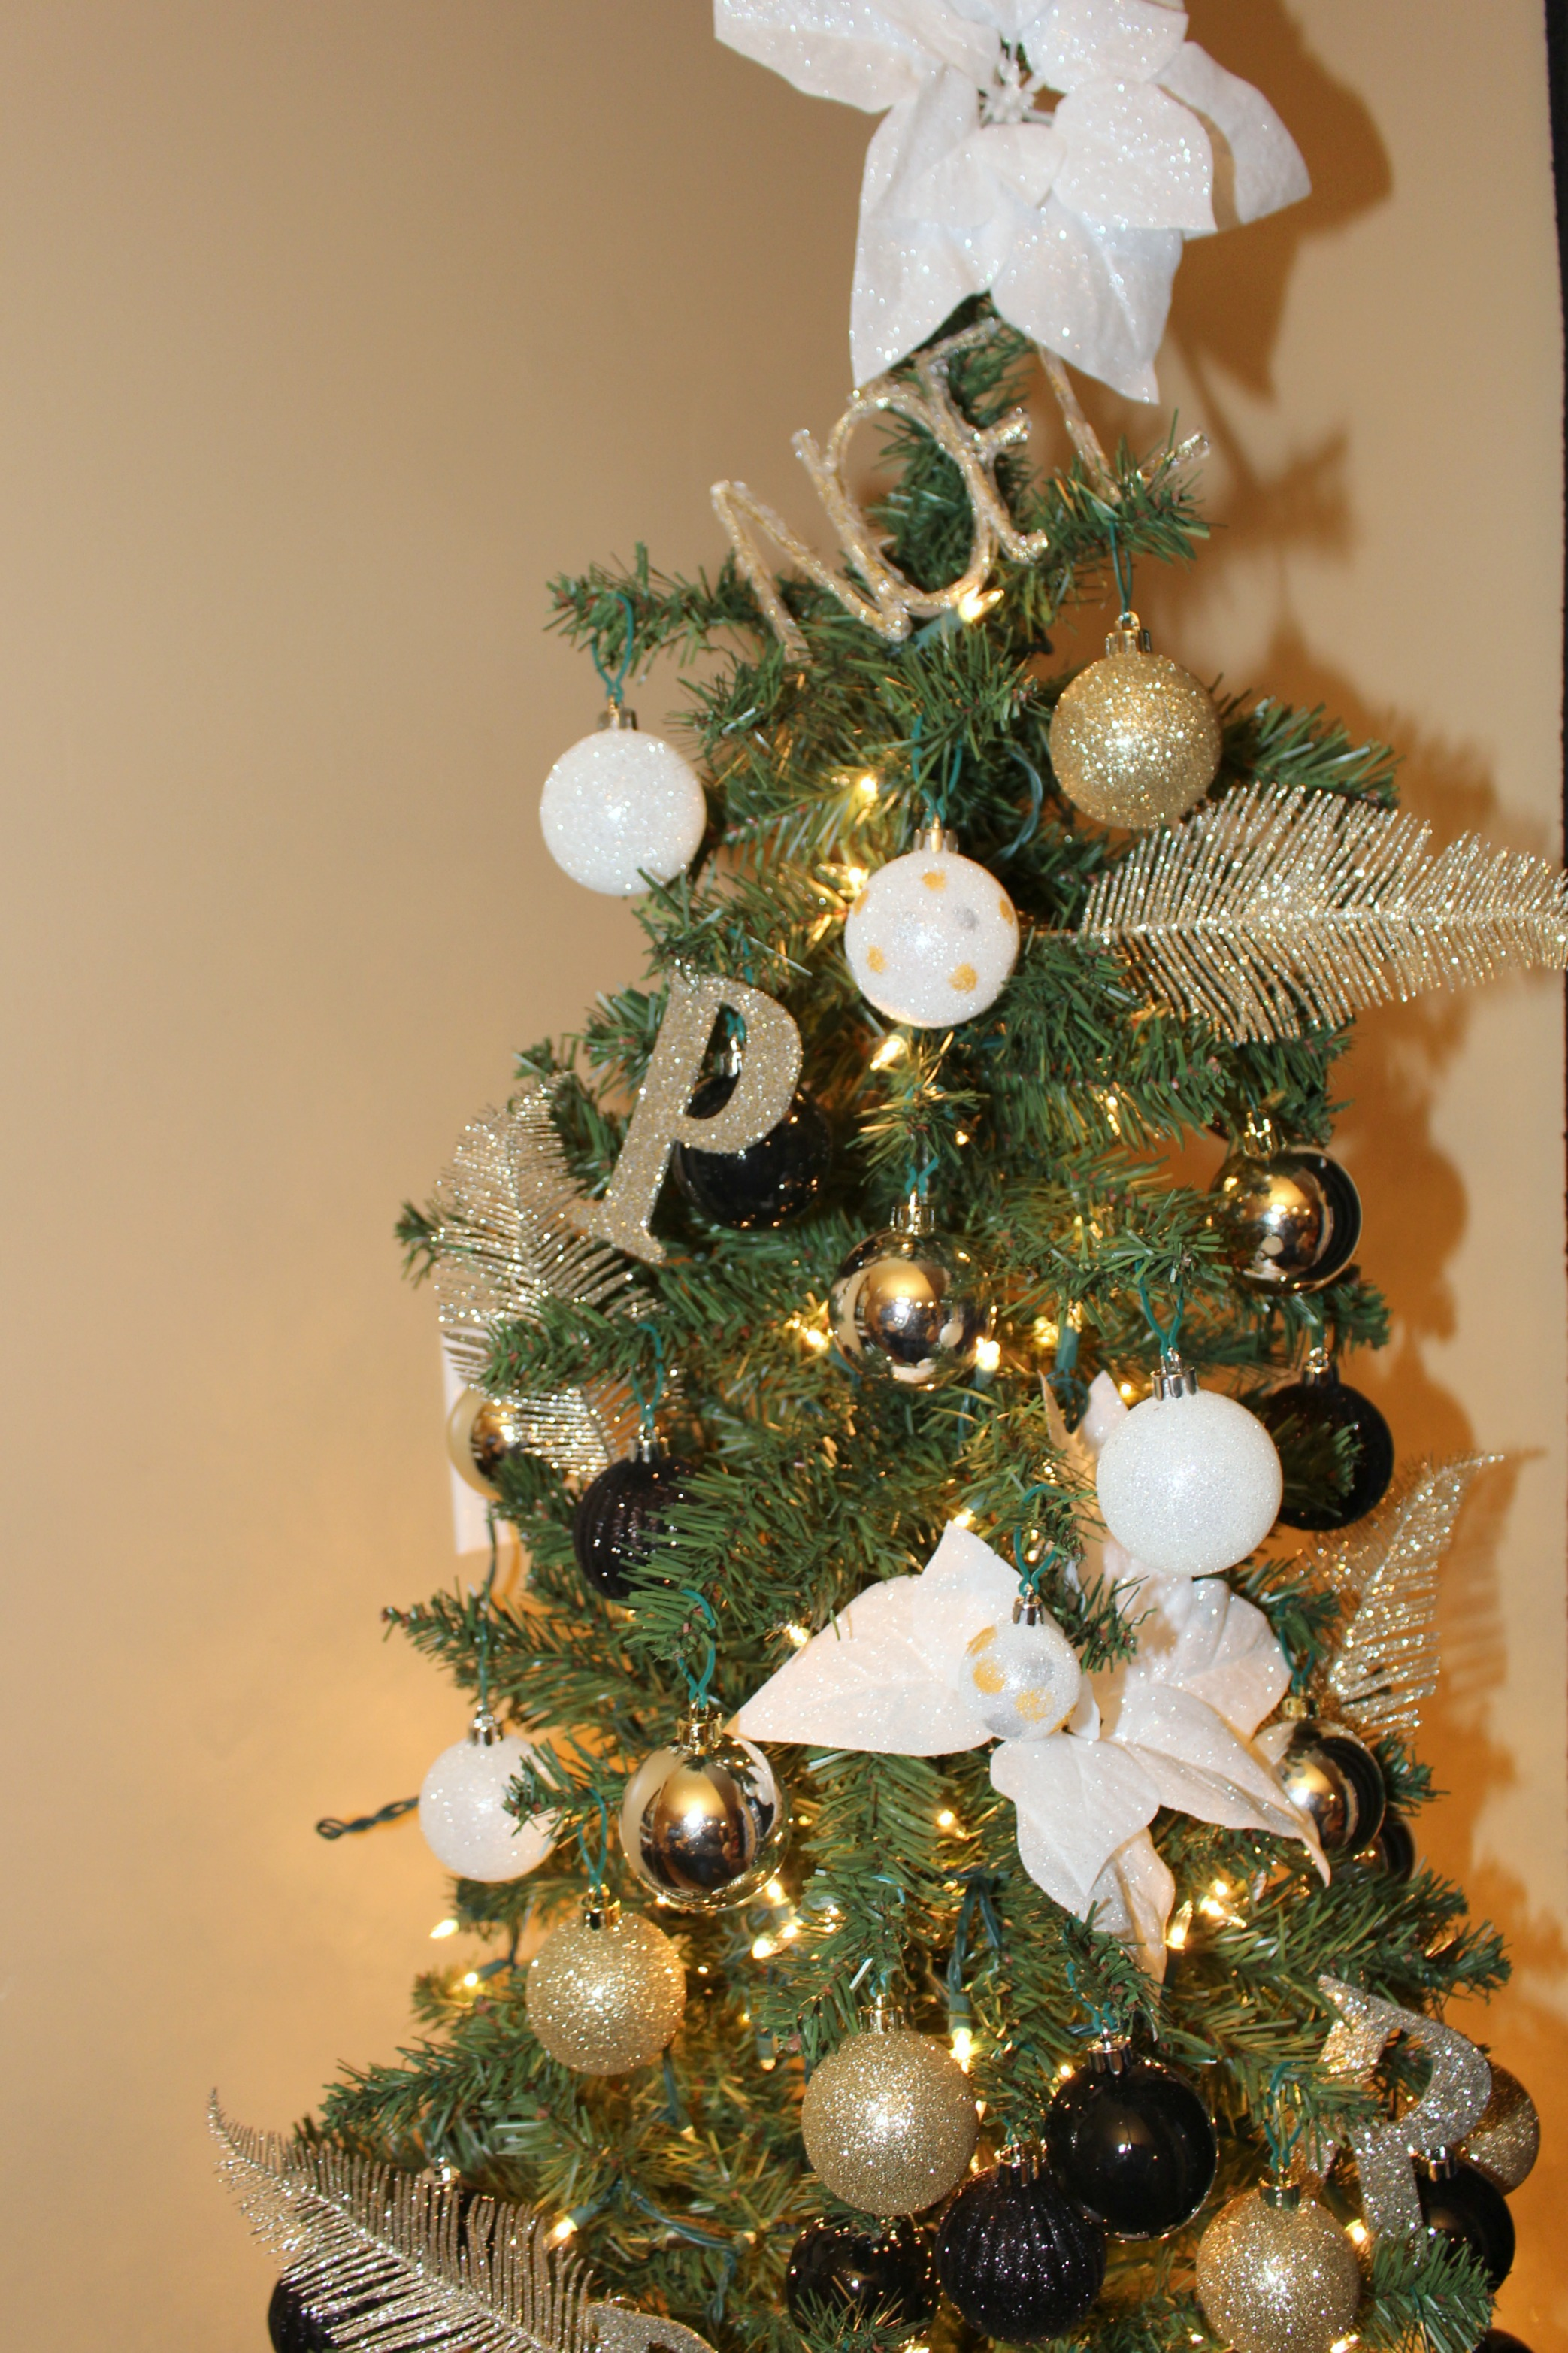 DIY Gold and Silver Christmas Ornaments